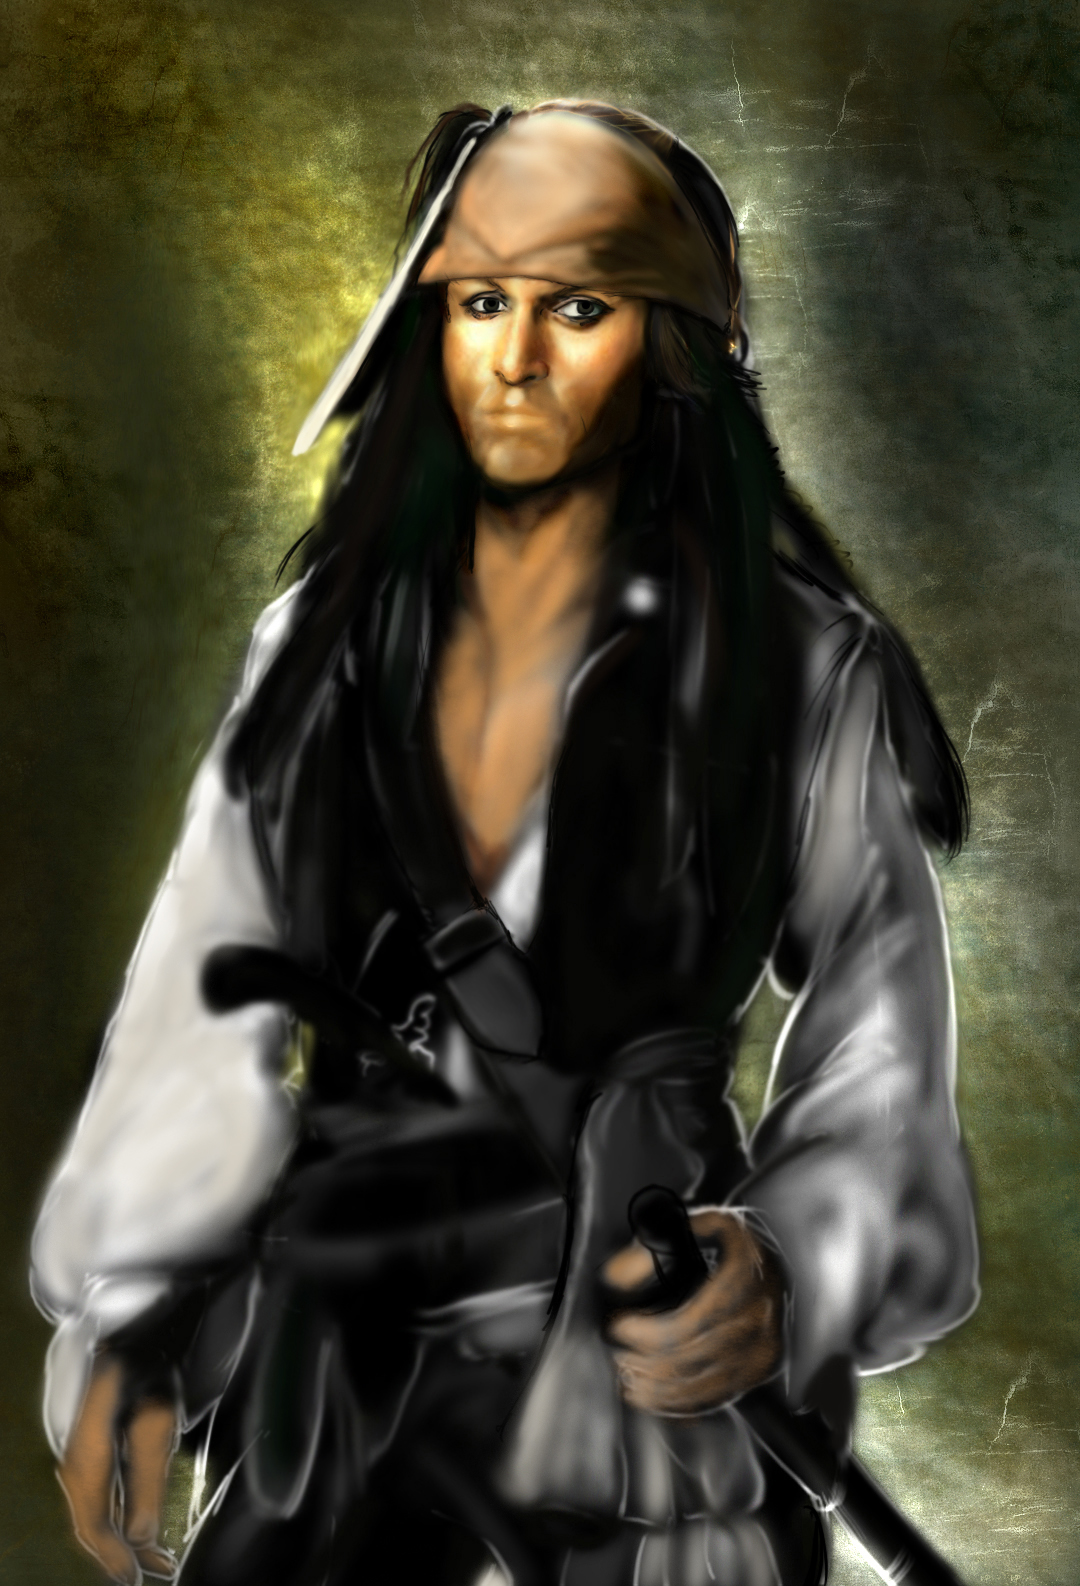 Jack Sparrow Phase III by KomyFly